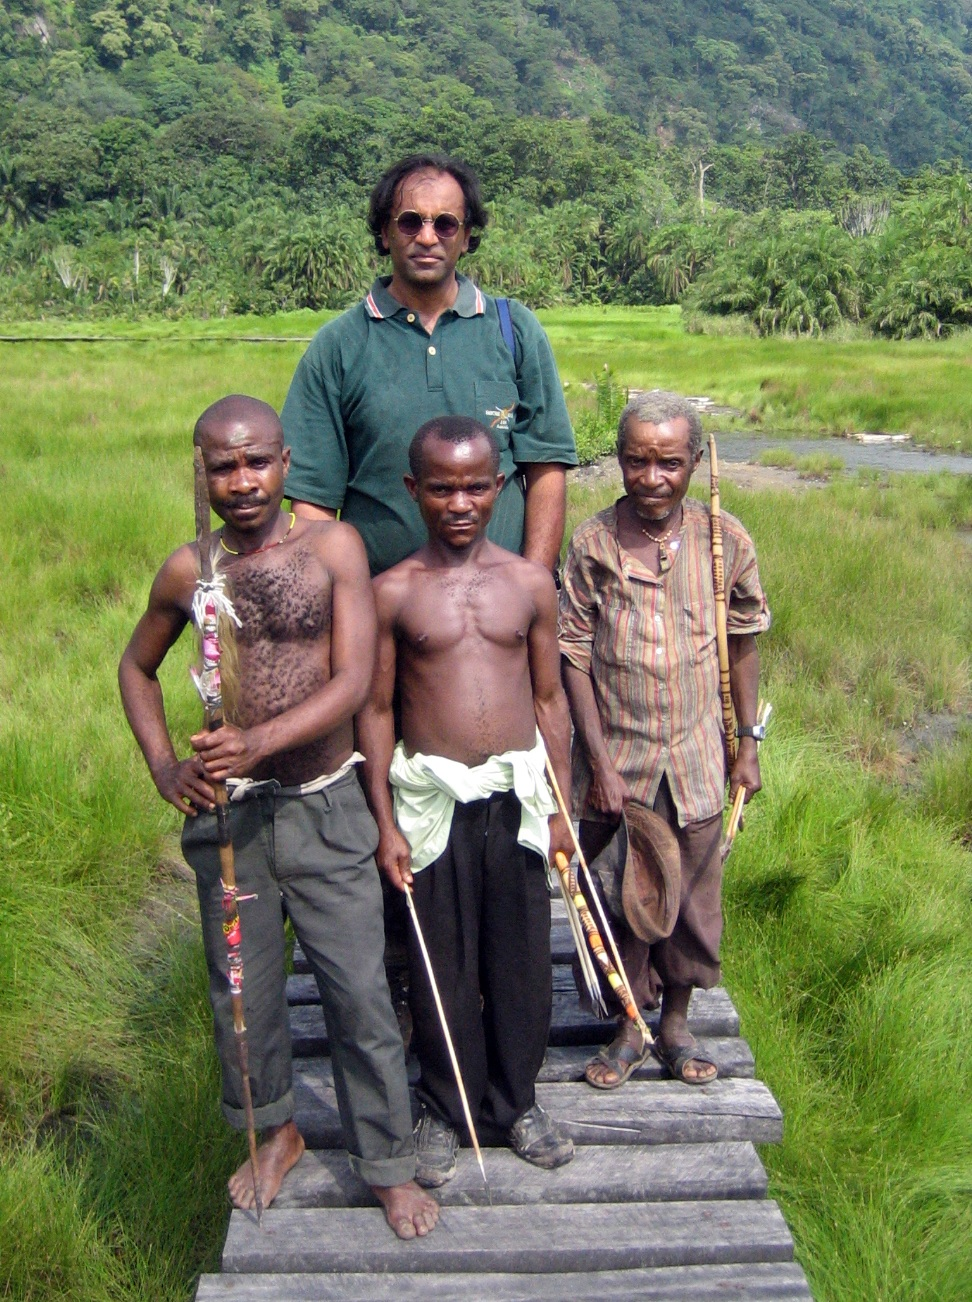 Hitesh with Batwa, a pygmy tribe, in Uganda.